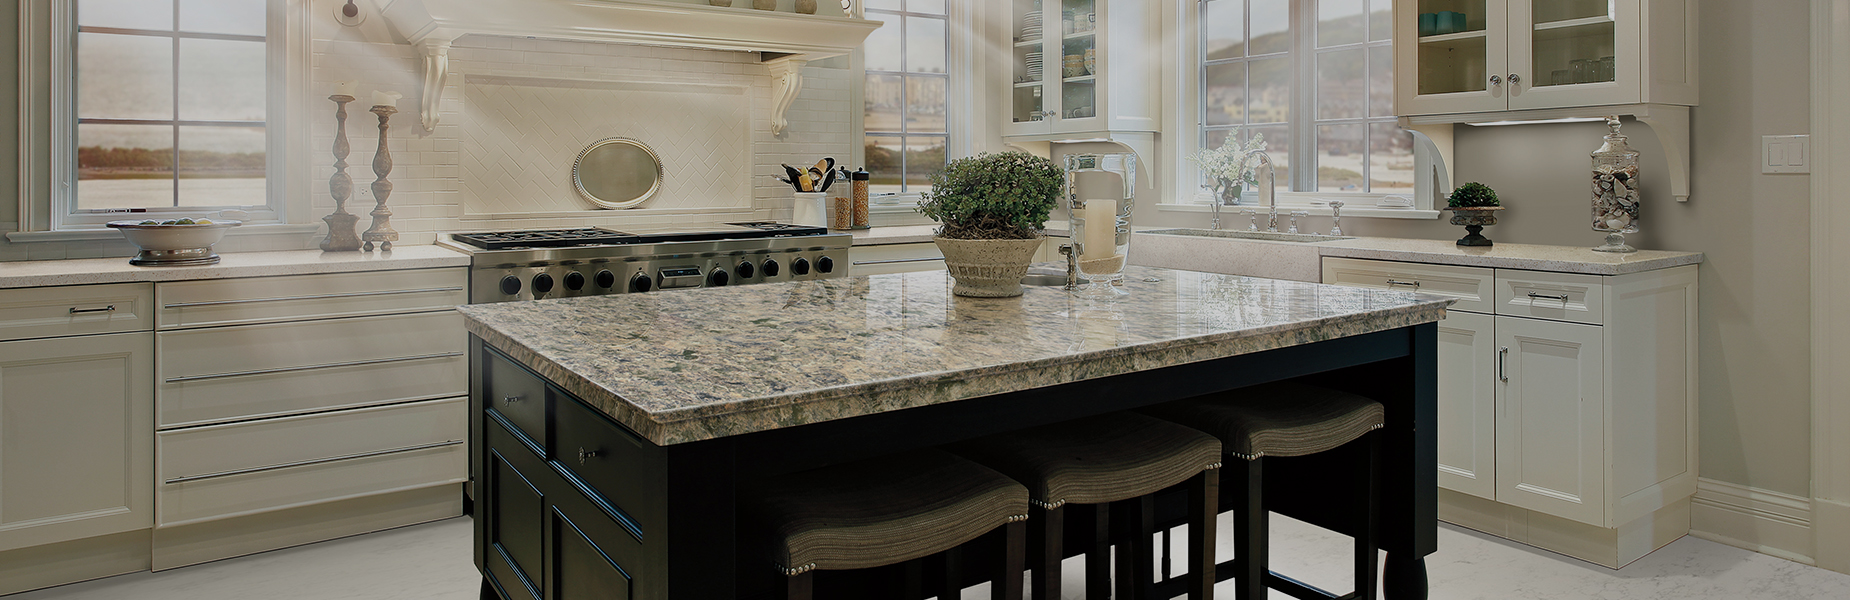 countertop installing countertops quality how to images buy commercial install granite